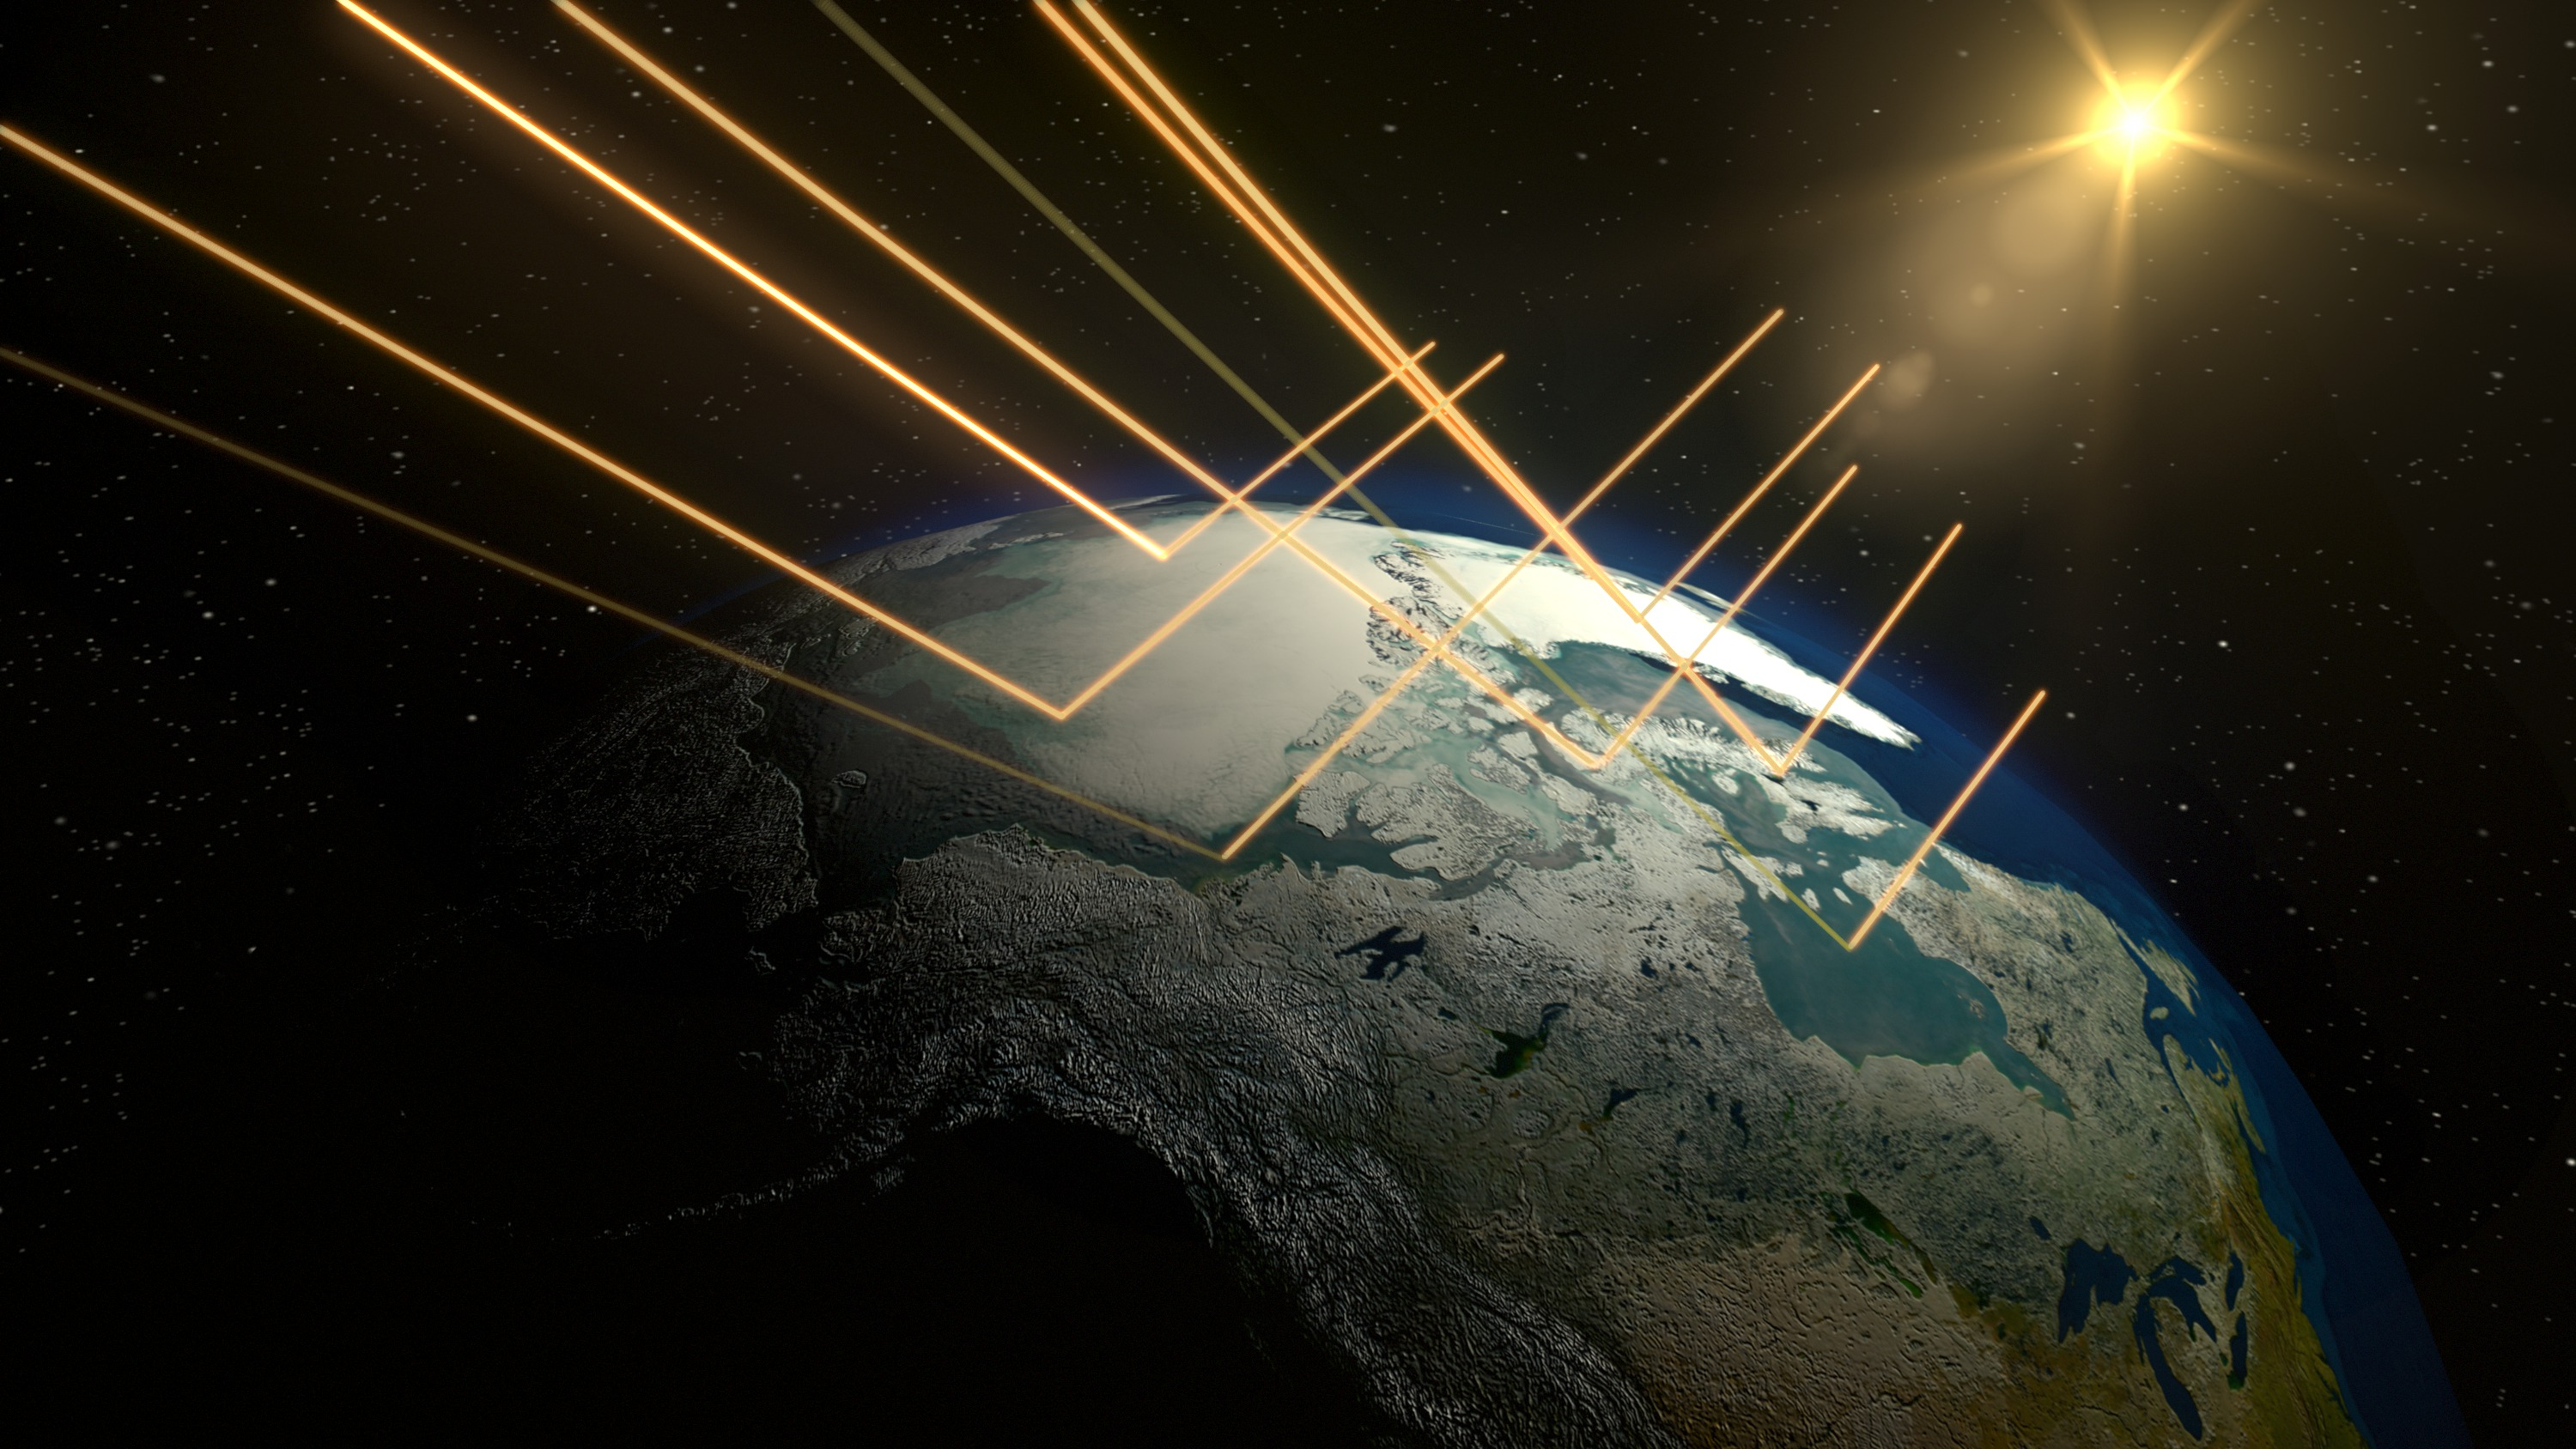 Snow and Ice reflect much more light and heat energy than darker continental or oceanic surfaces